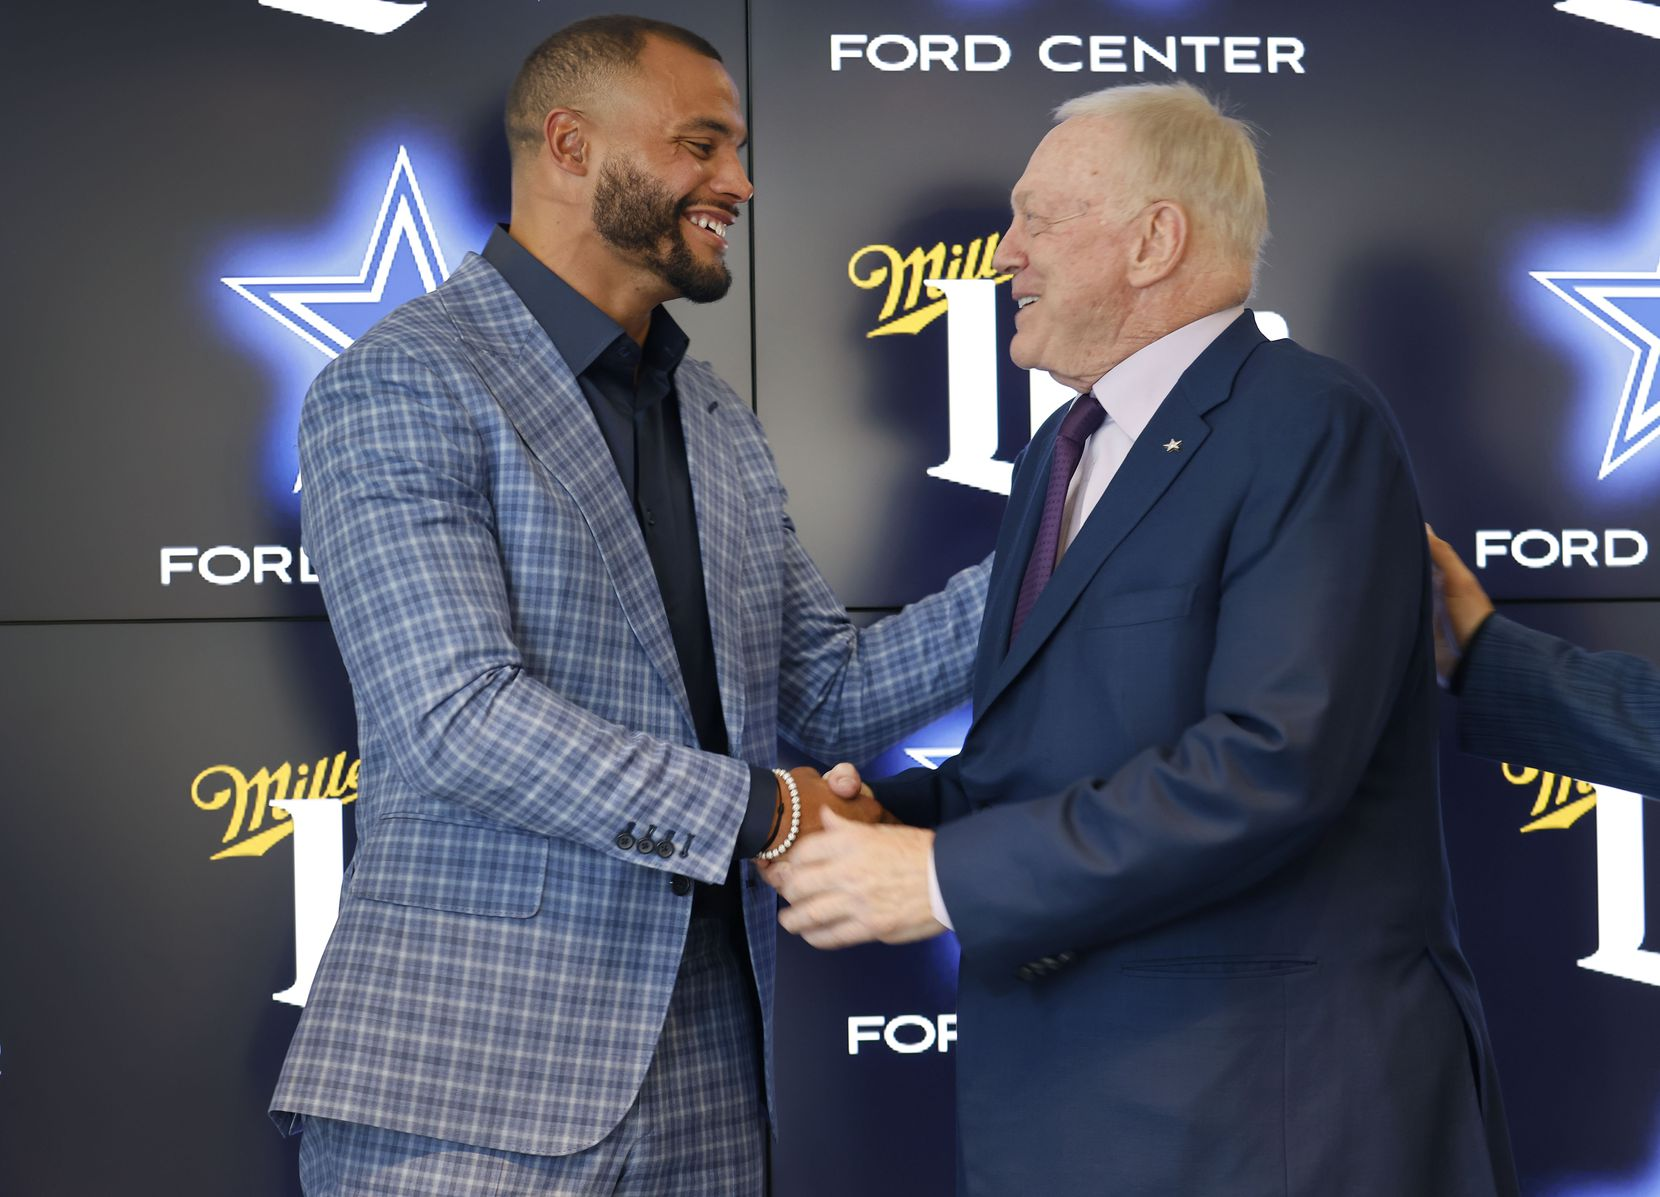 Dallas Cowboys quarterback Dak Prescott (left) and Dallas Cowboys owner Jerry Jones shake hands following a press conference at The Star in Frisco, Texas, Wednesday, March 10, 2021.